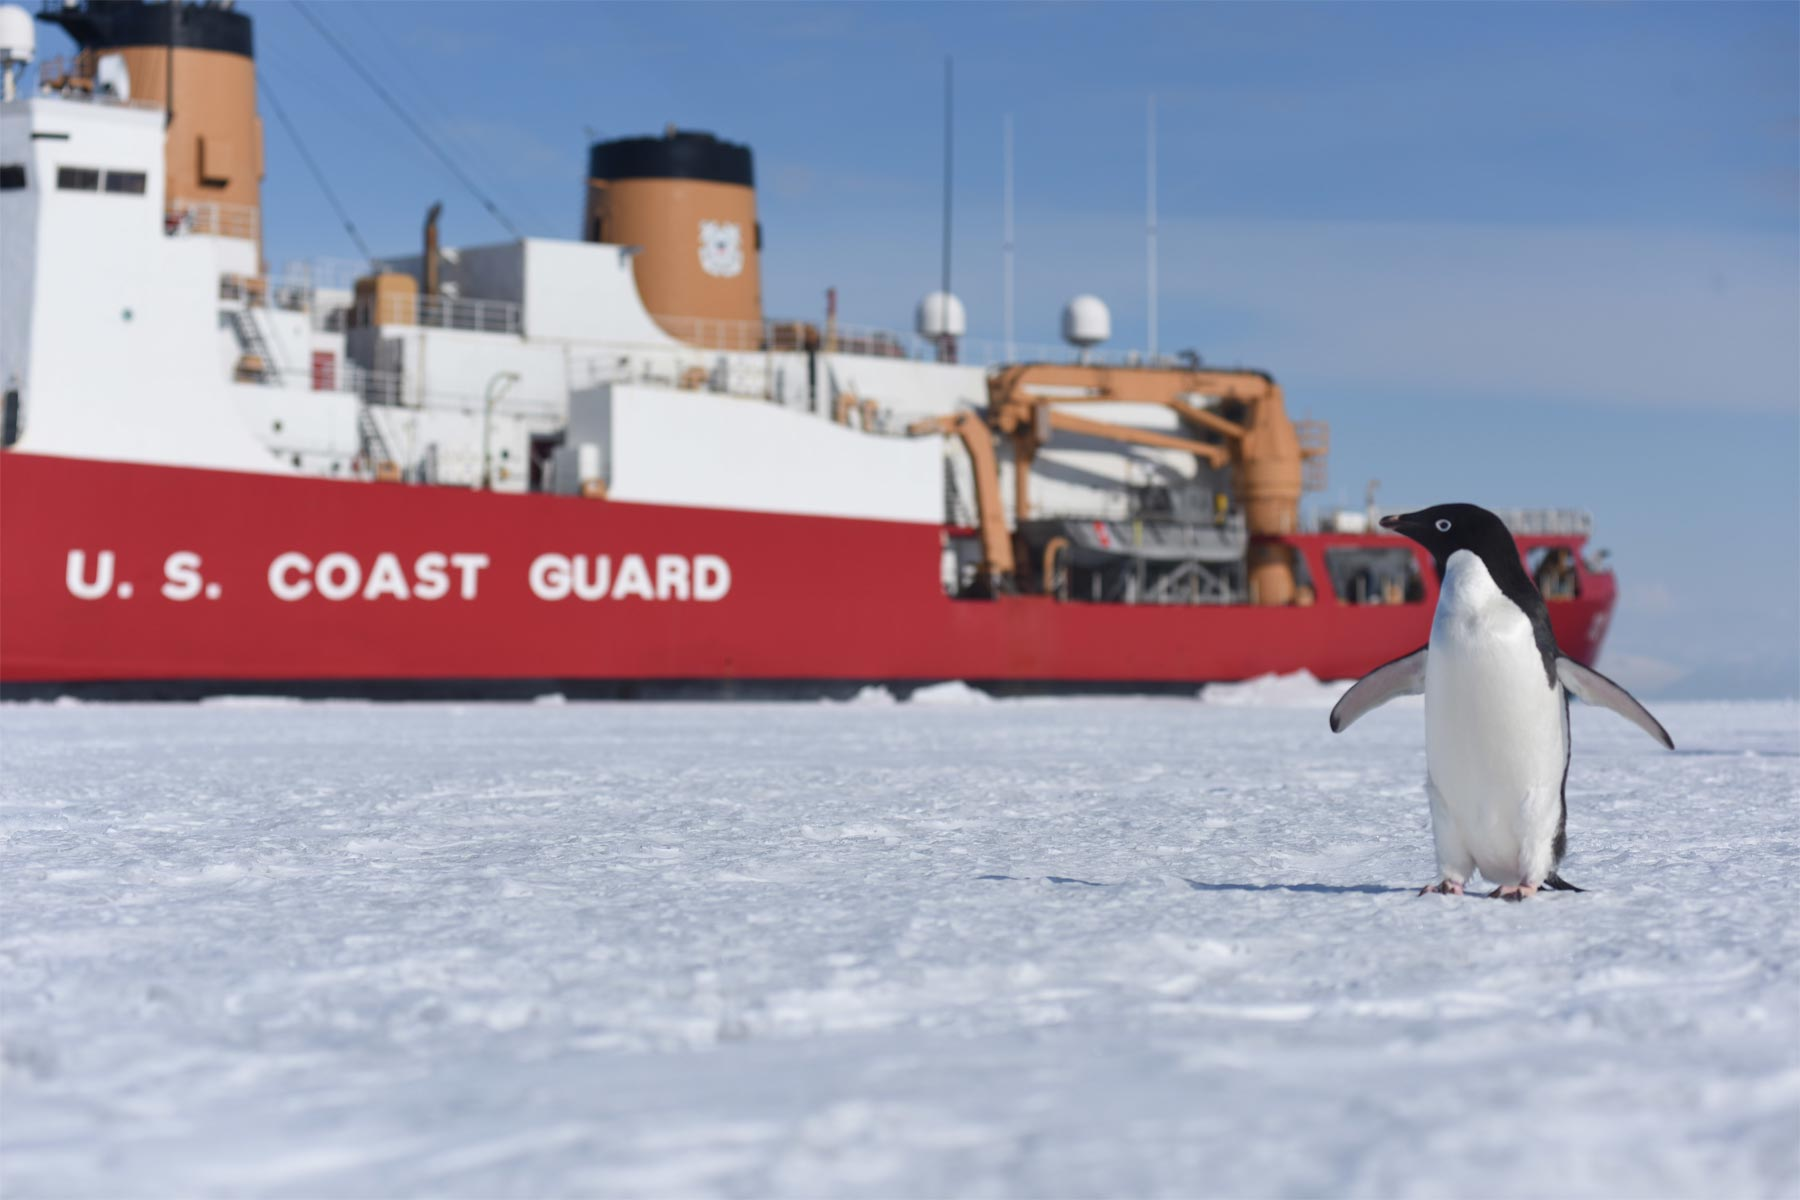 More US Military Power Needed in Antarctic to Deter Malign Activity, General Says